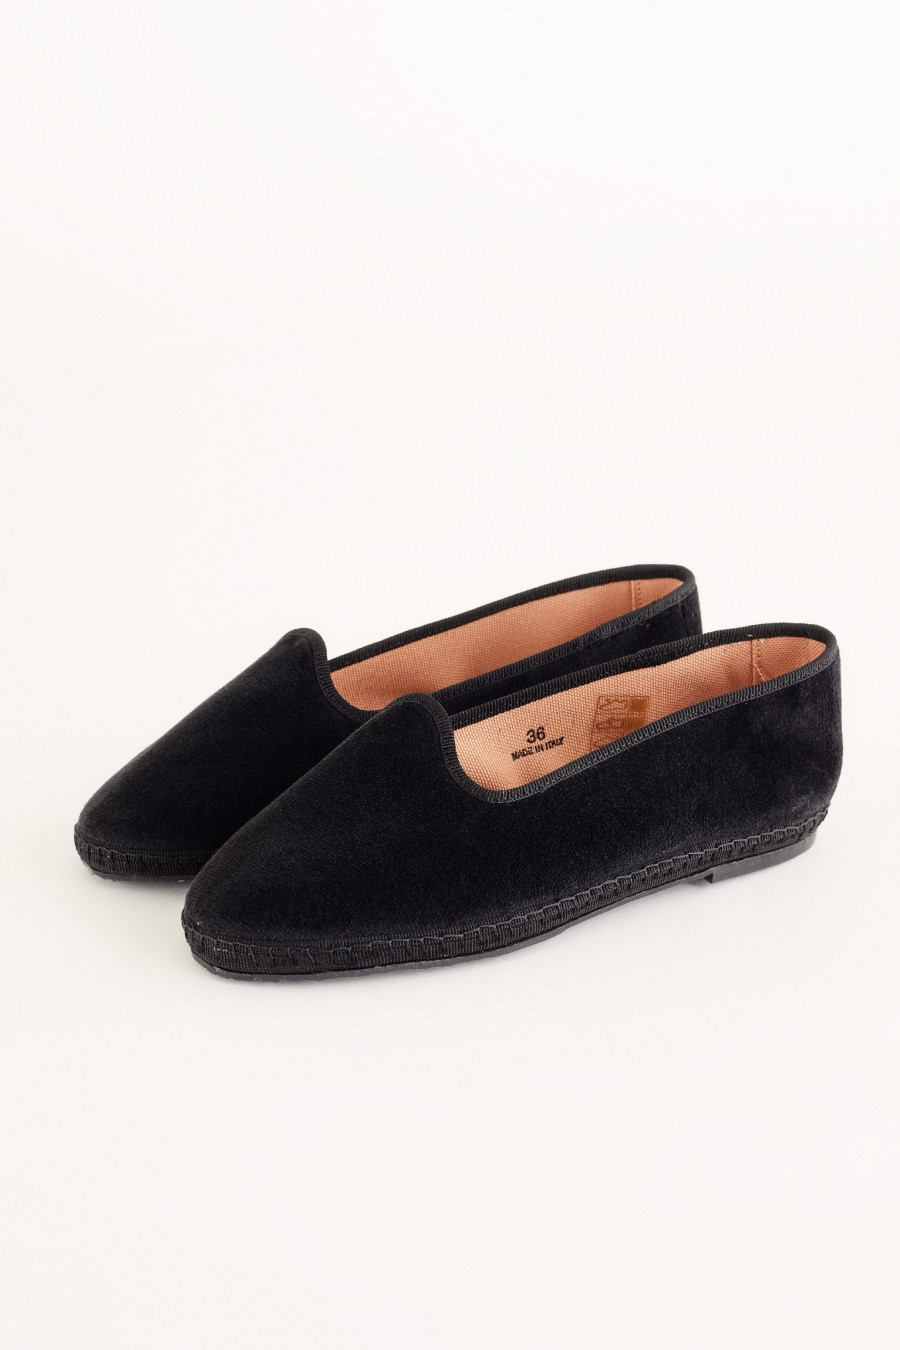 black velvet friulane shoe slippers